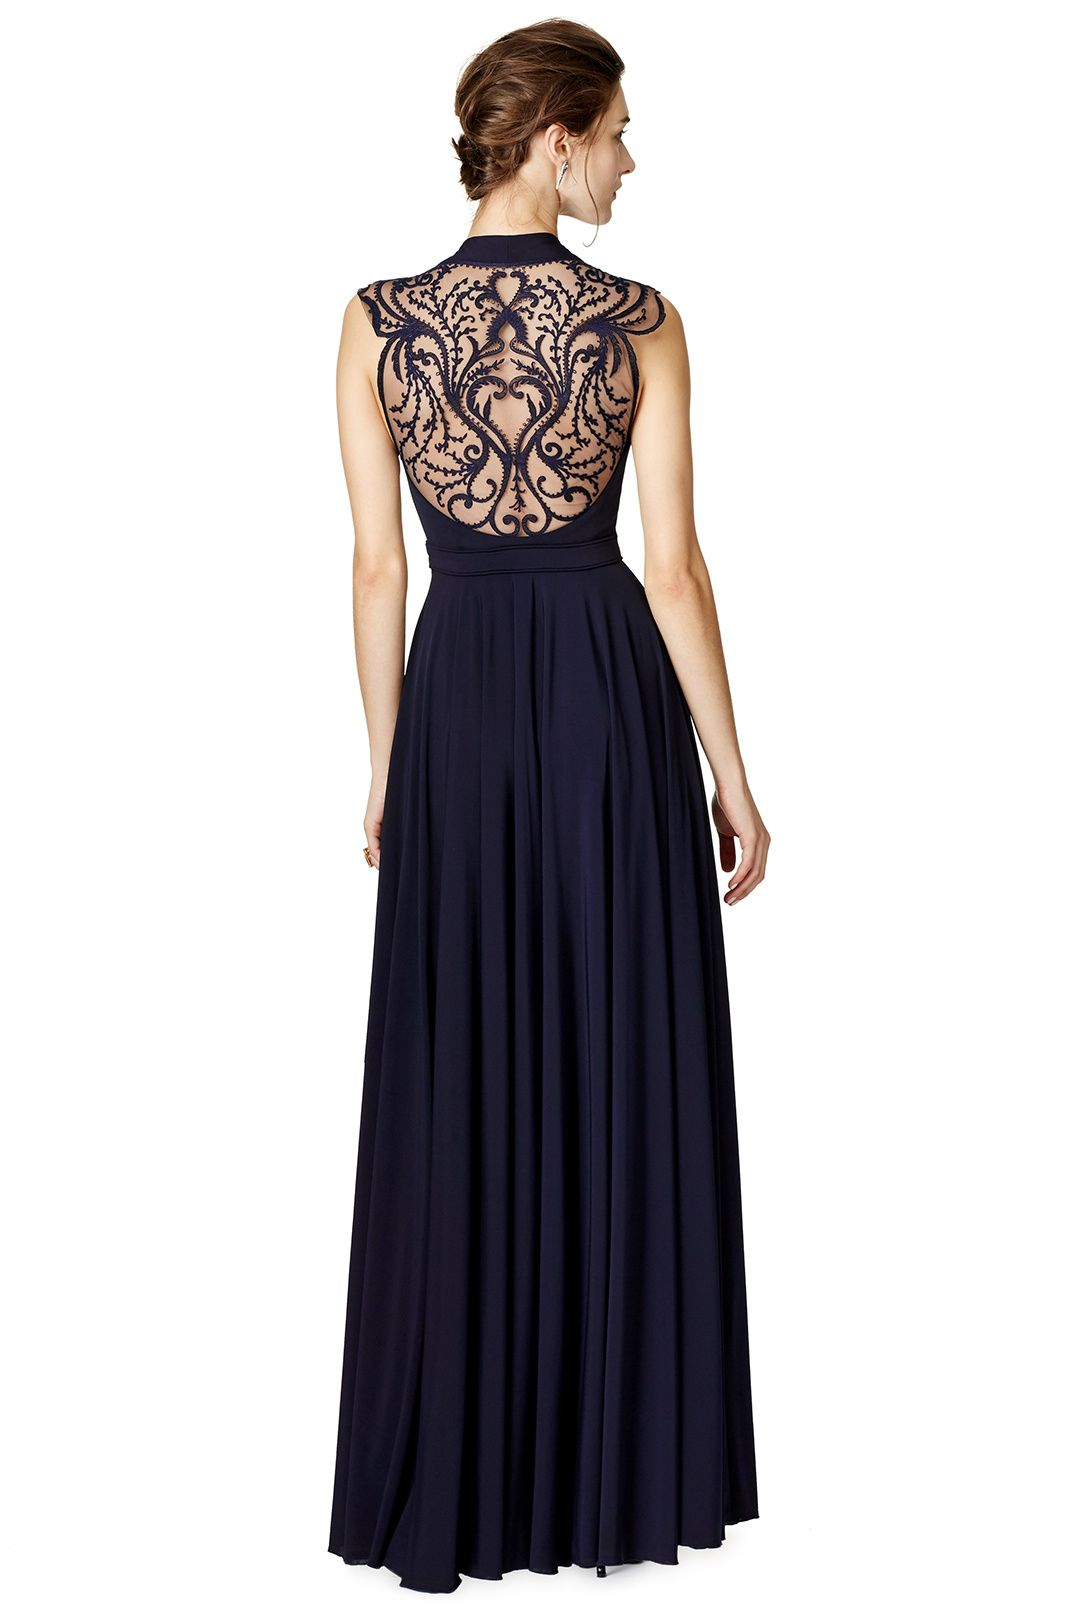 Winona gown catherine deane gowns and prom mob dresses ombrellifo Image collections